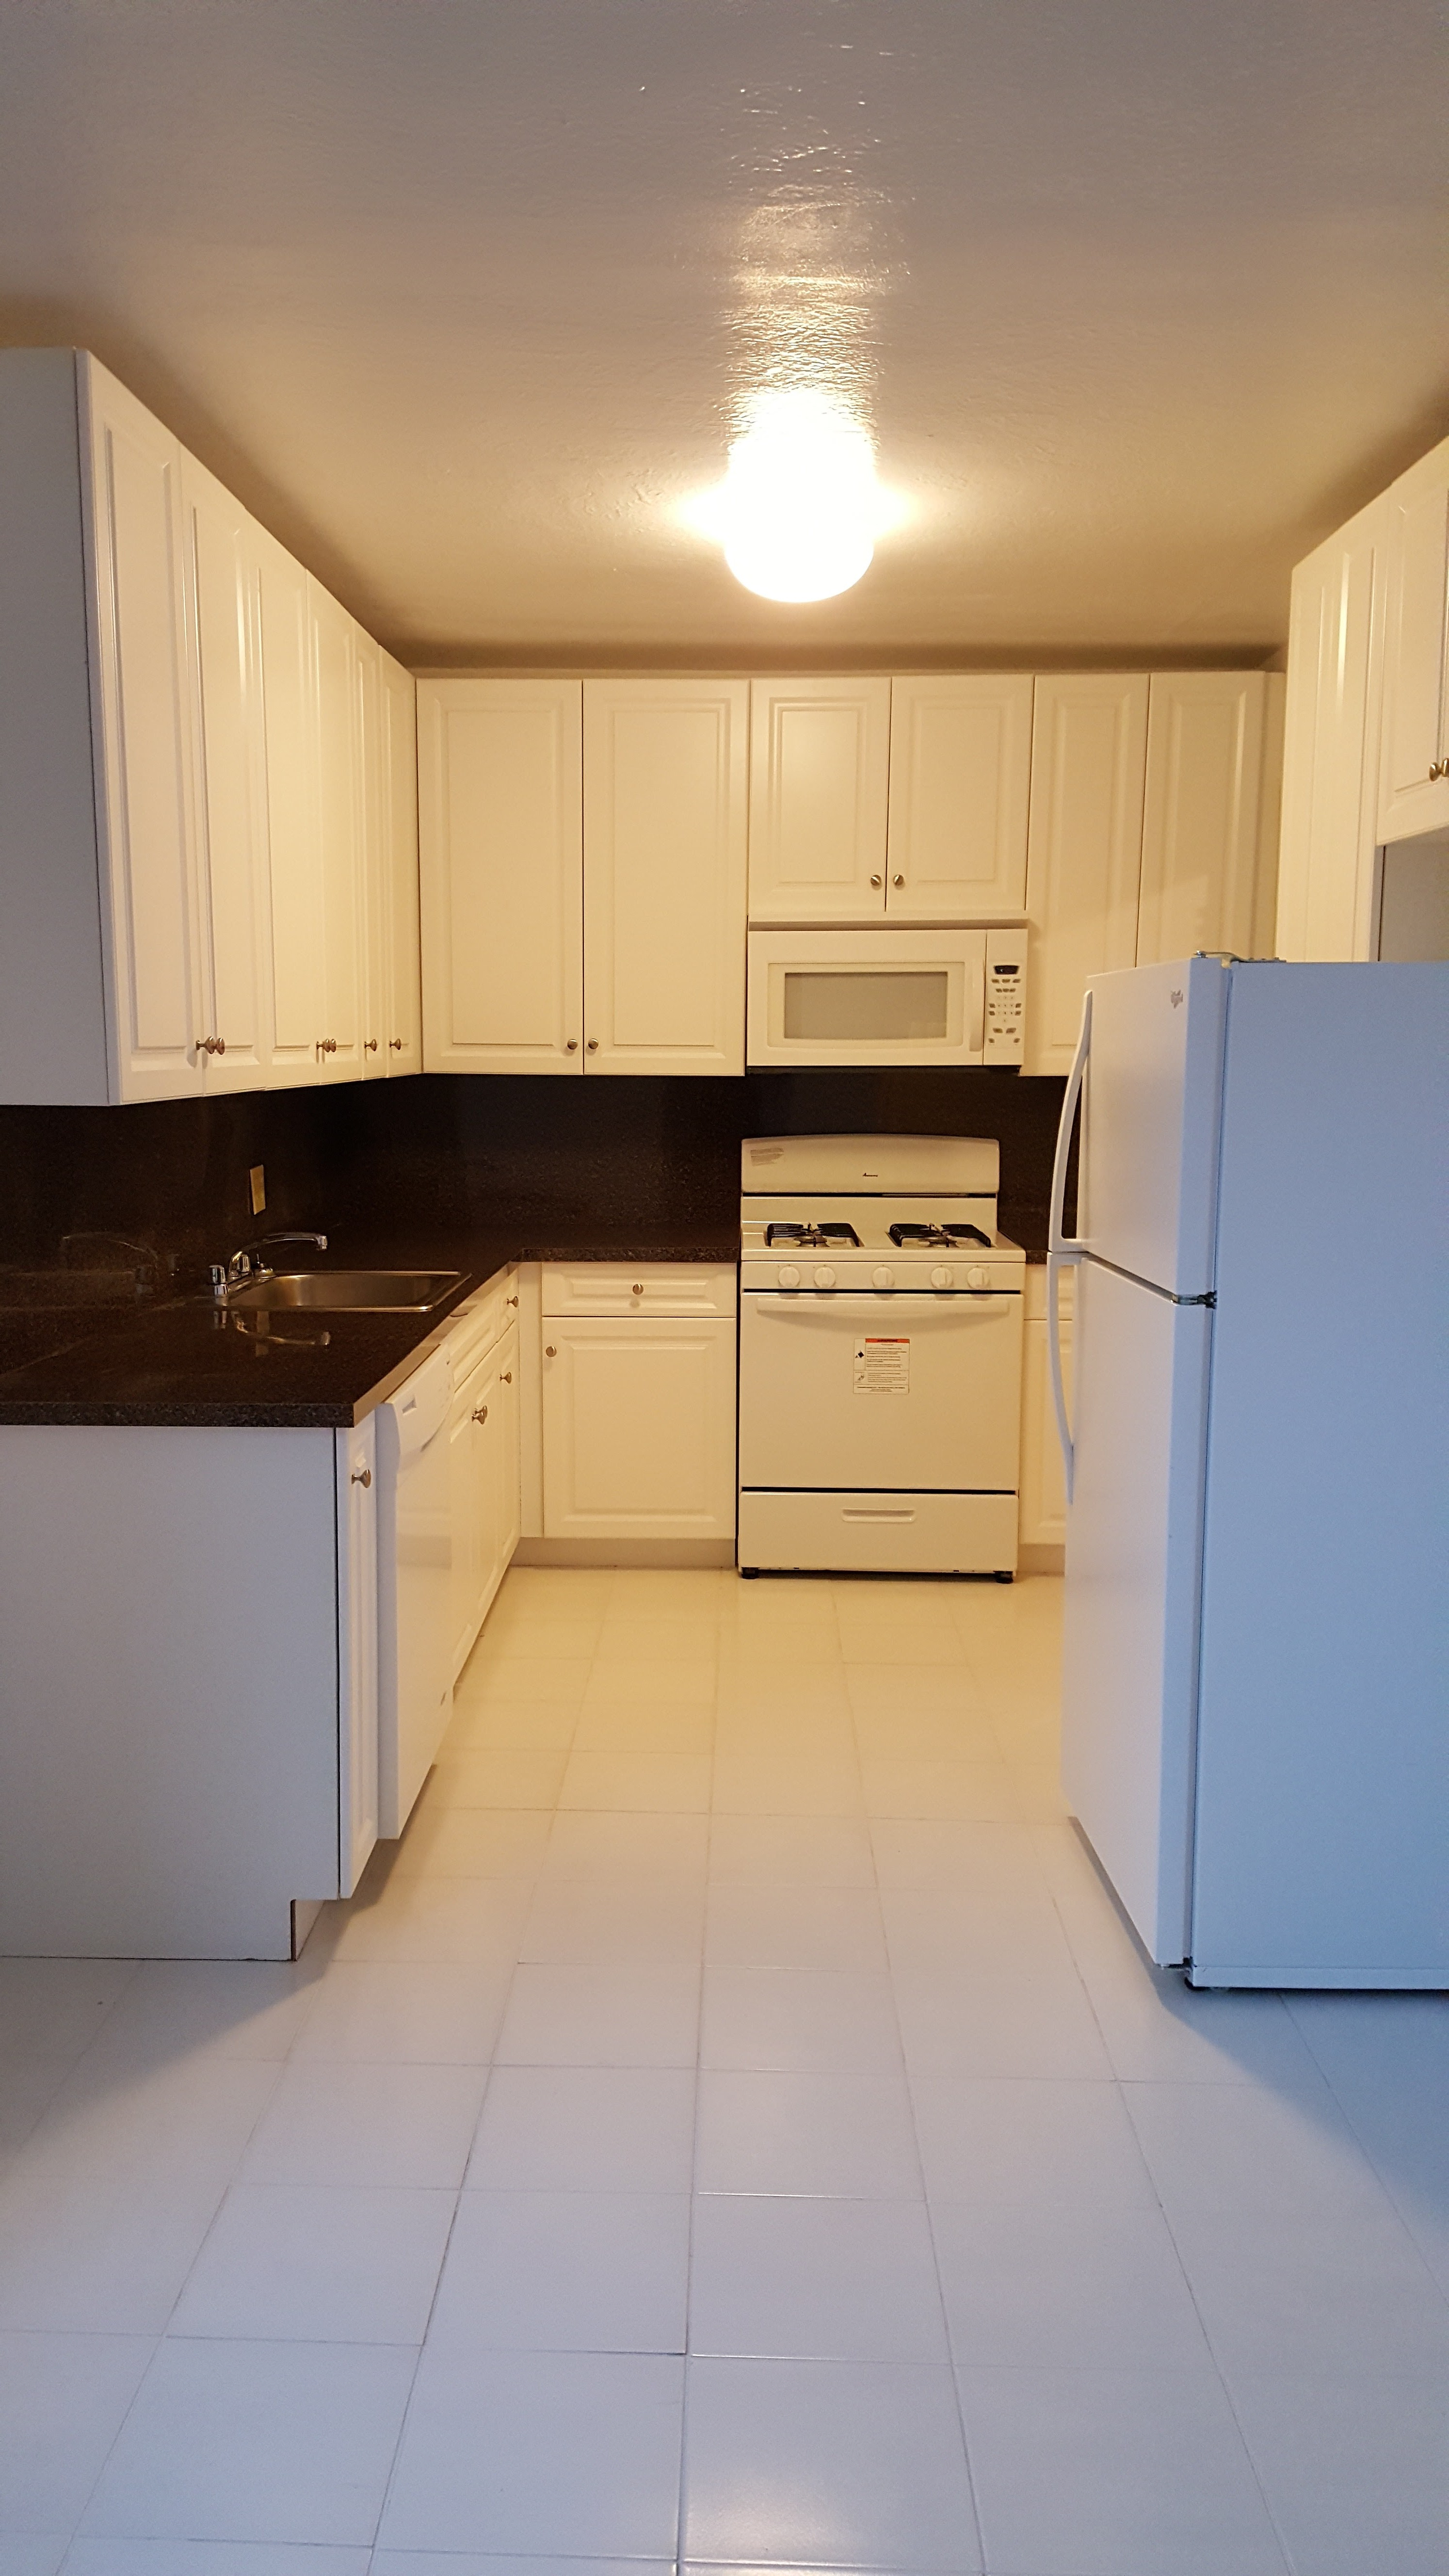 2728 Henry Hudson Pkwy B75 Bronx Ny 10463 2 Bedroom Apartment For Rent For 2 600 Month Zumper